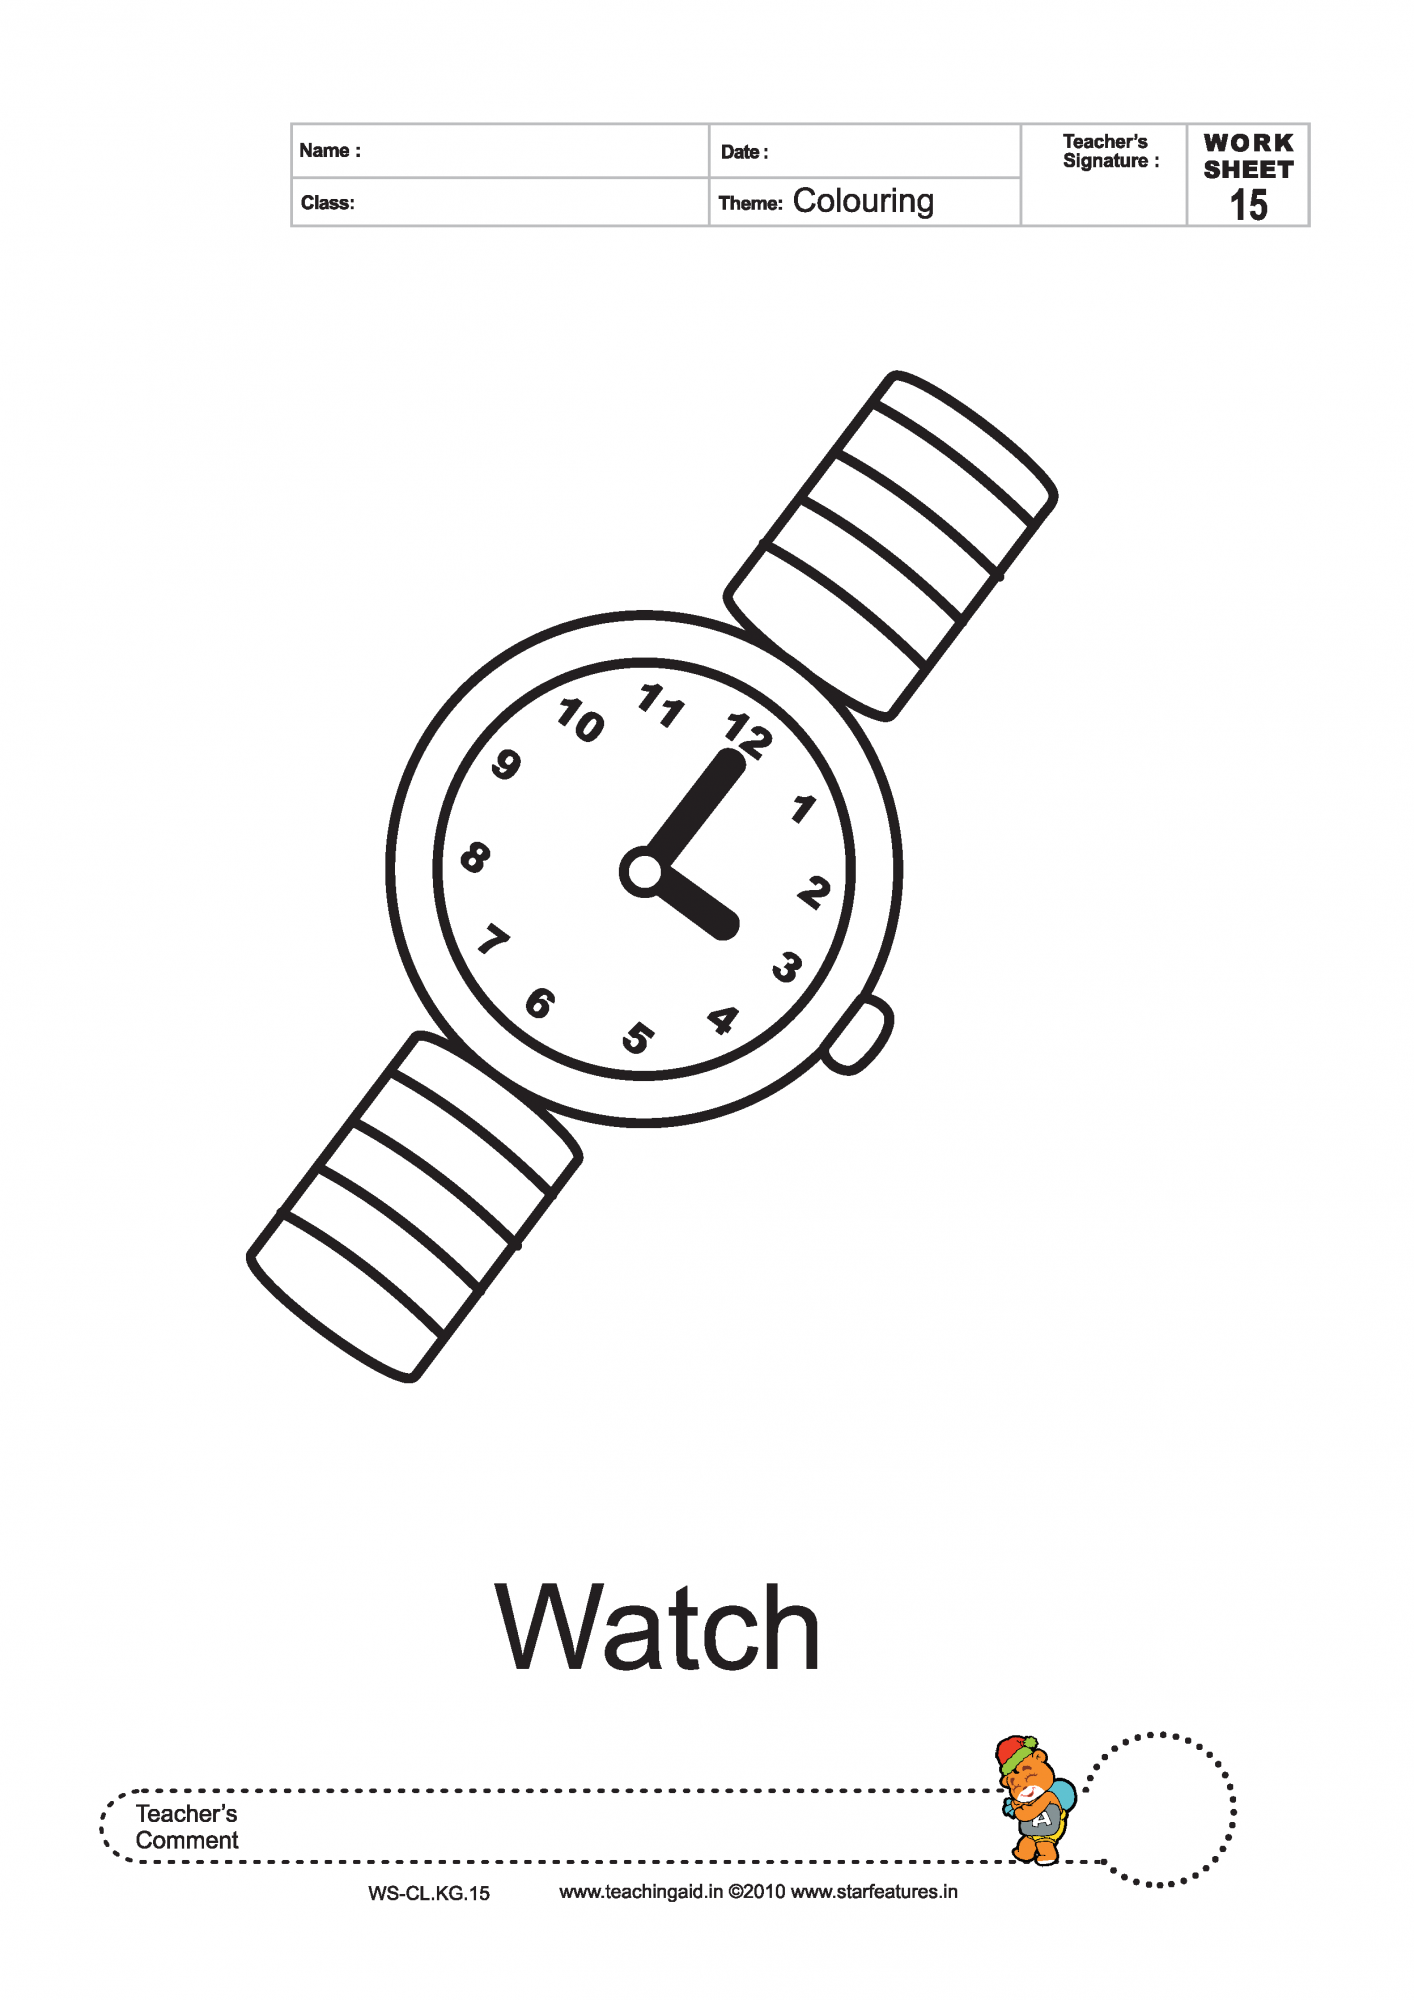 Watch coloring page coloring pages for Watch coloring page